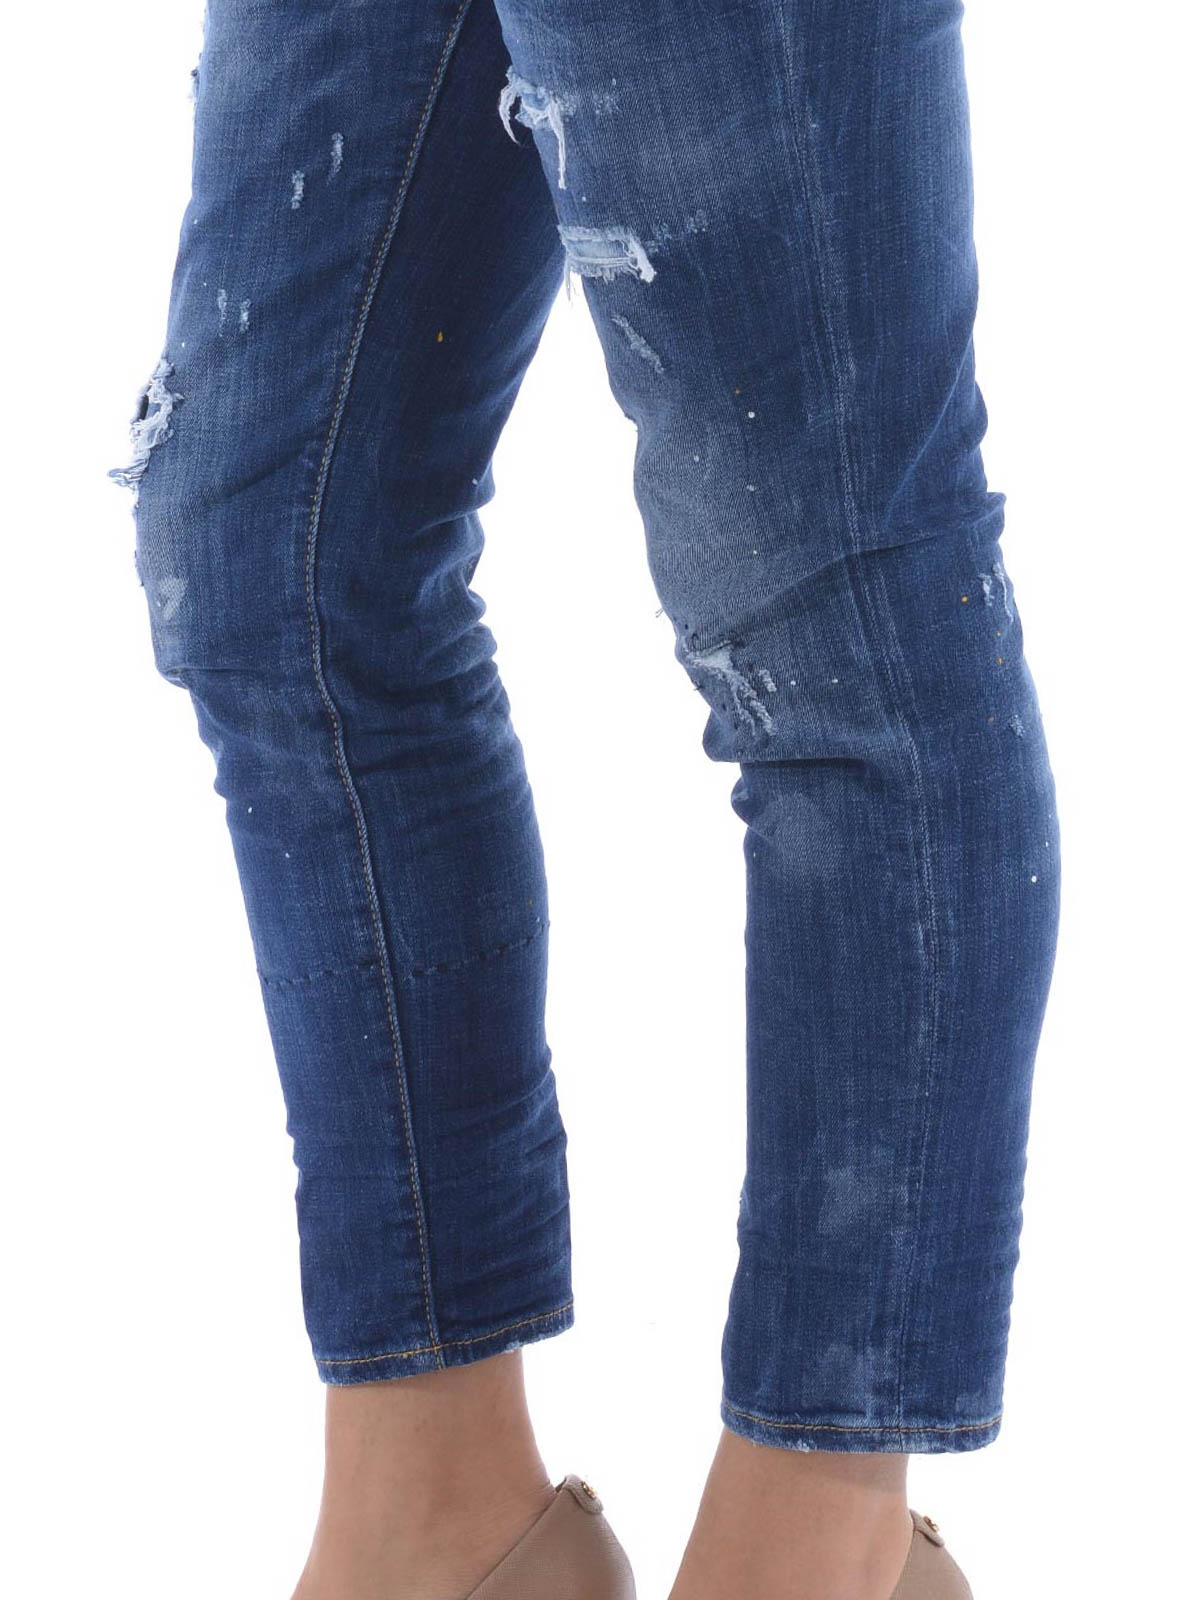 You can buy ripped jeans online which is the best thing to do. Brands like Jack and Jones, Roadster, Numero Uno and many more, manufacture this kind of jeans. These brands make ripped jeans available on many online shopping sites such as Myntra.